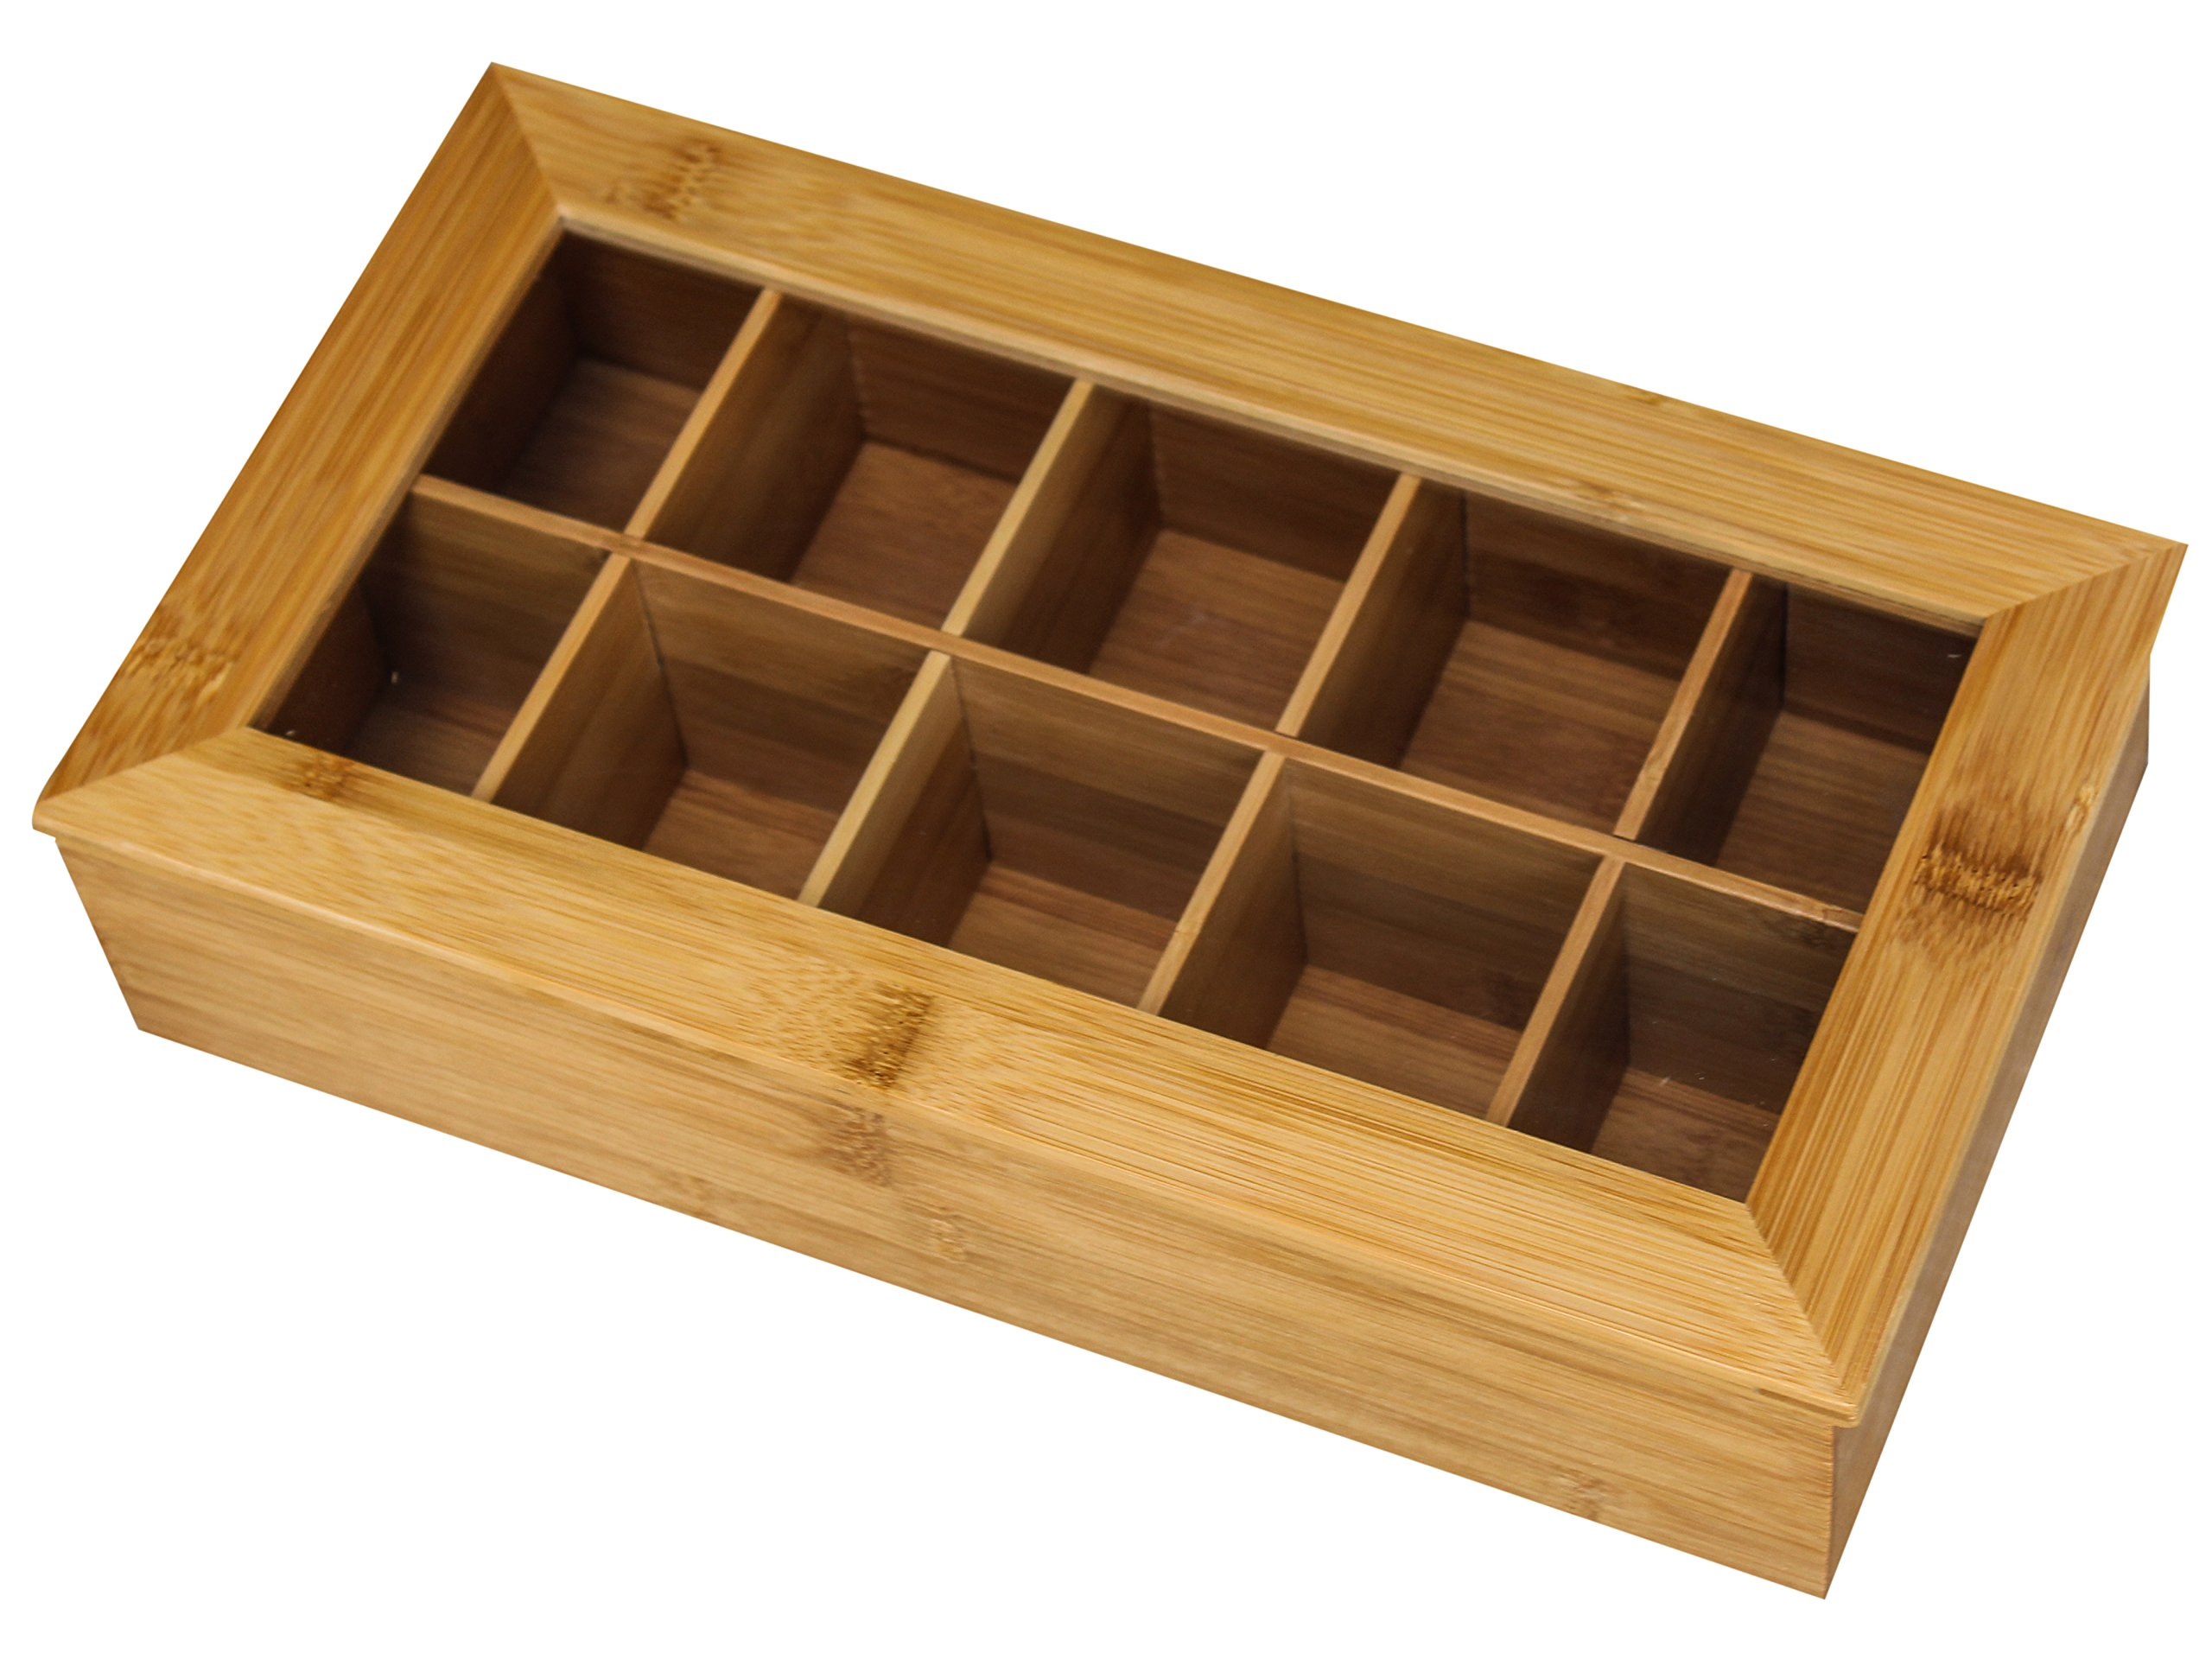 Bamboo Tea Storage Box - Tea Bag Organizer Or Kitchen Condiment Holder Perfect for Tea Lovers (14.5'' x 8'' x 4'')